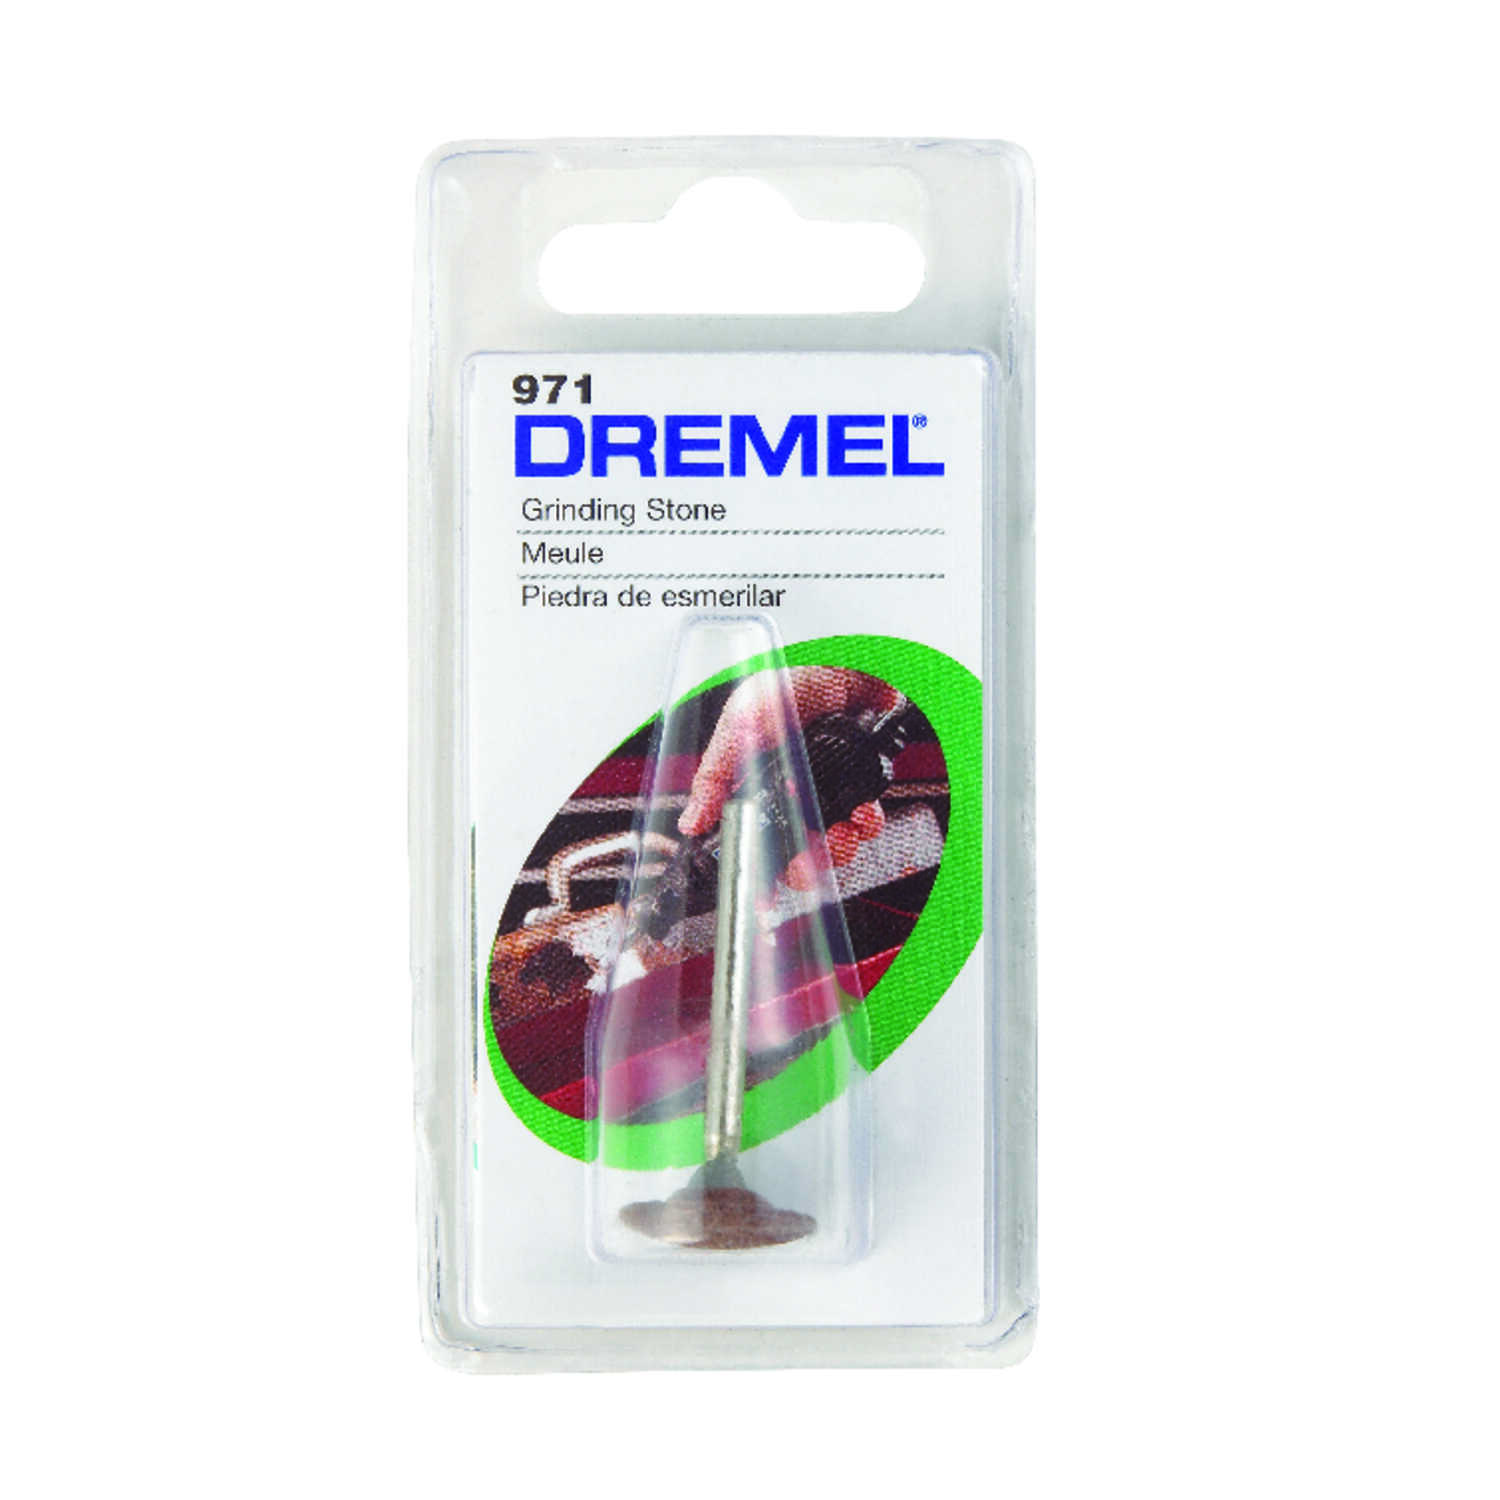 Dremel  5/8 in. Dia. x 5/8 in. L Aluminum Oxide  Domed  35000 rpm 1 pc. Grinding Stone